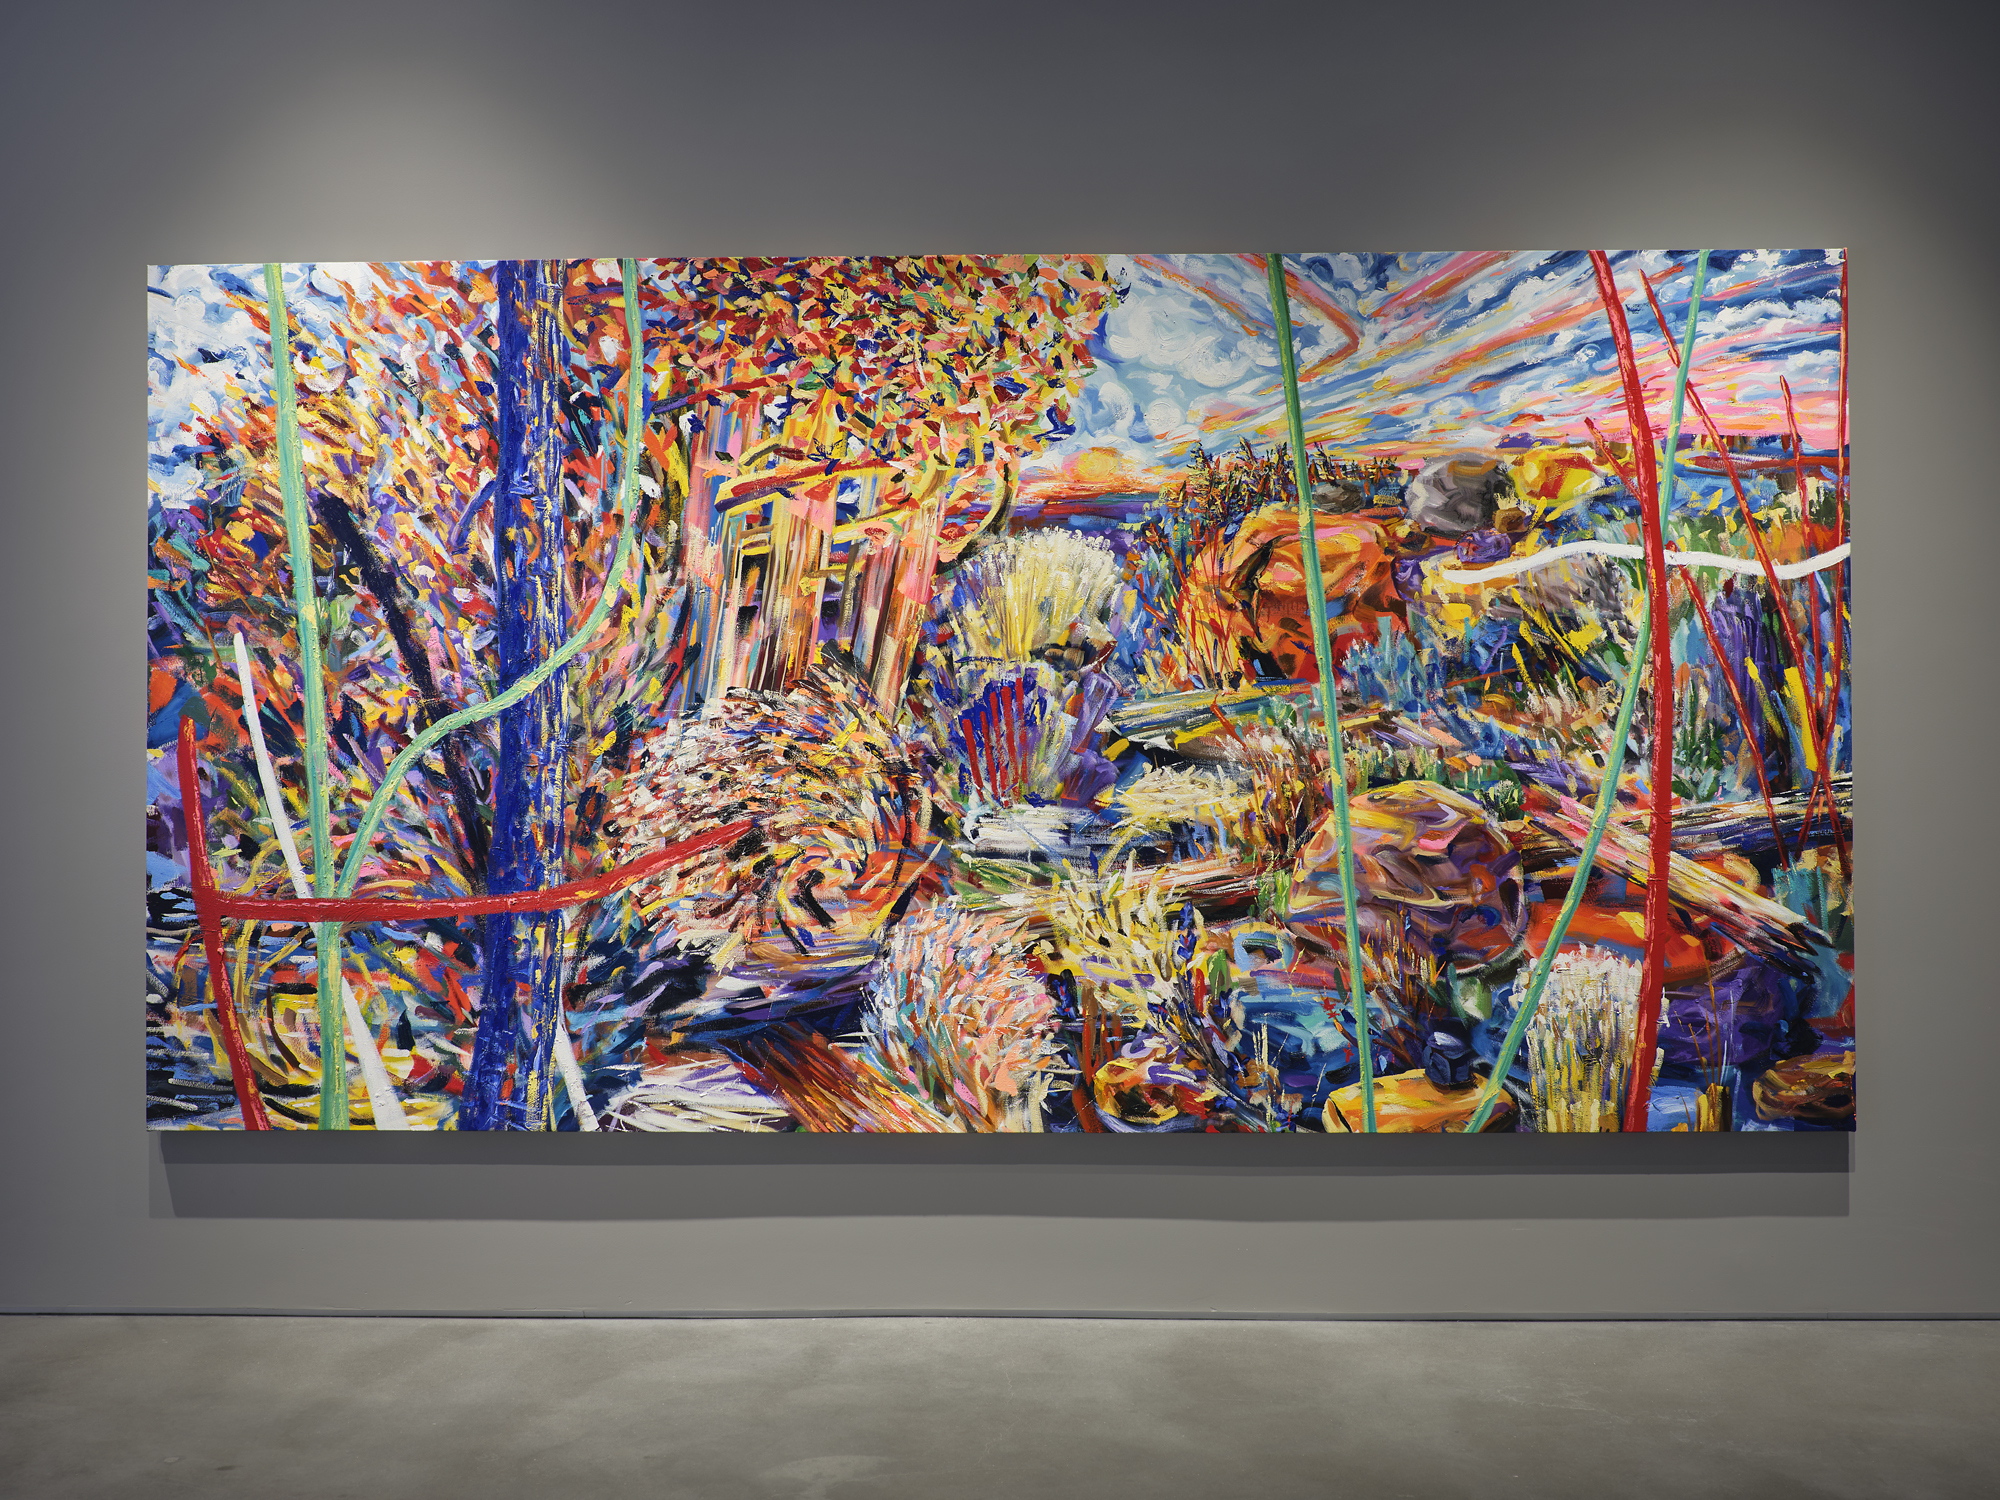 A photograph a large scale vibrant abstract landscape painting on view in an art gallery